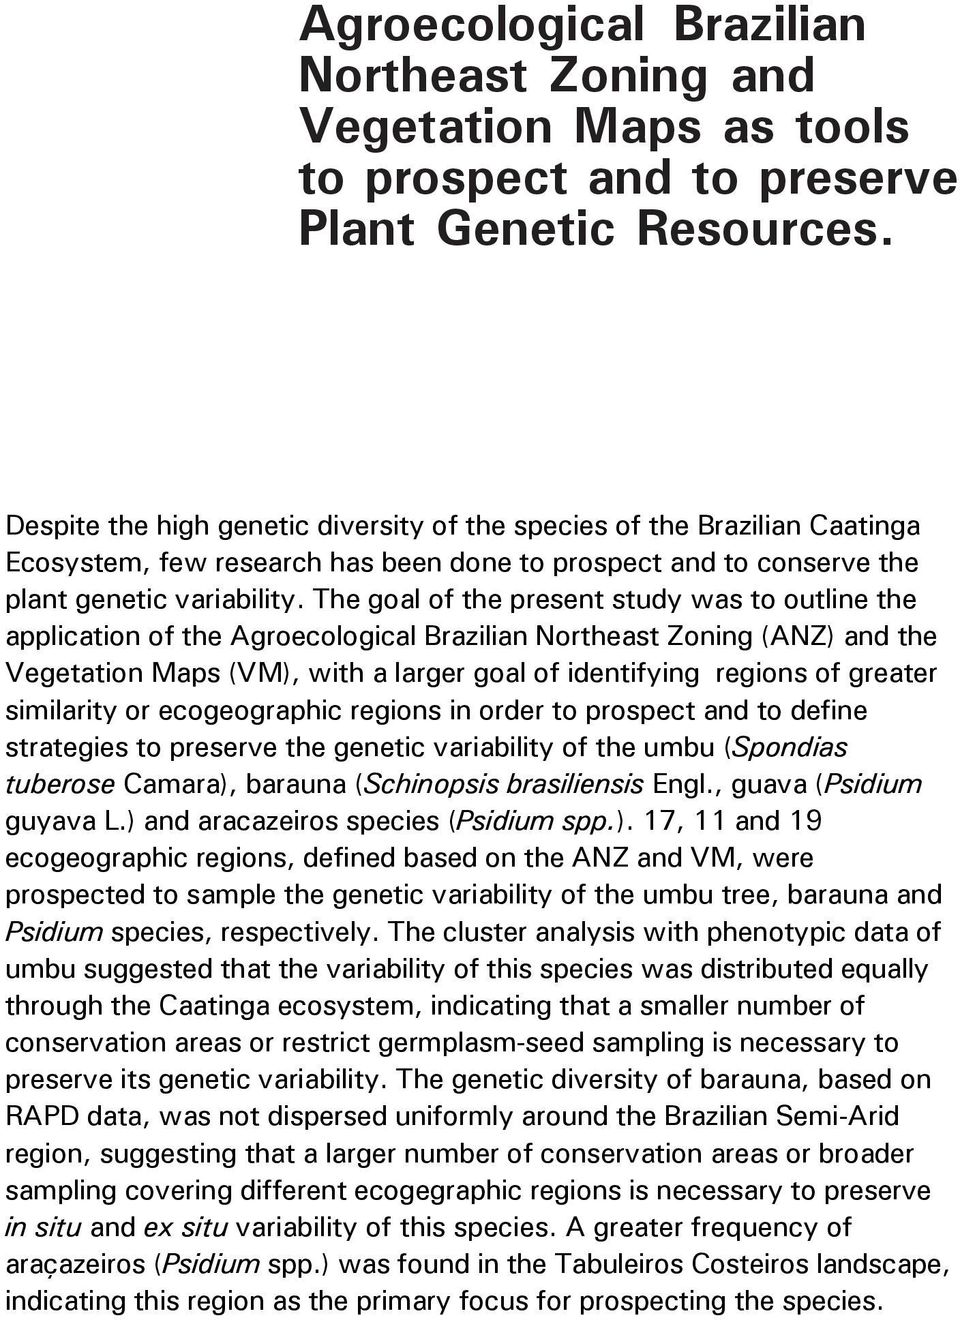 Despite the high genetic diversity of the species of the Brazilian Caatinga Ecosystem, few research has been done to prospect and to conserve the plant genetic variability.